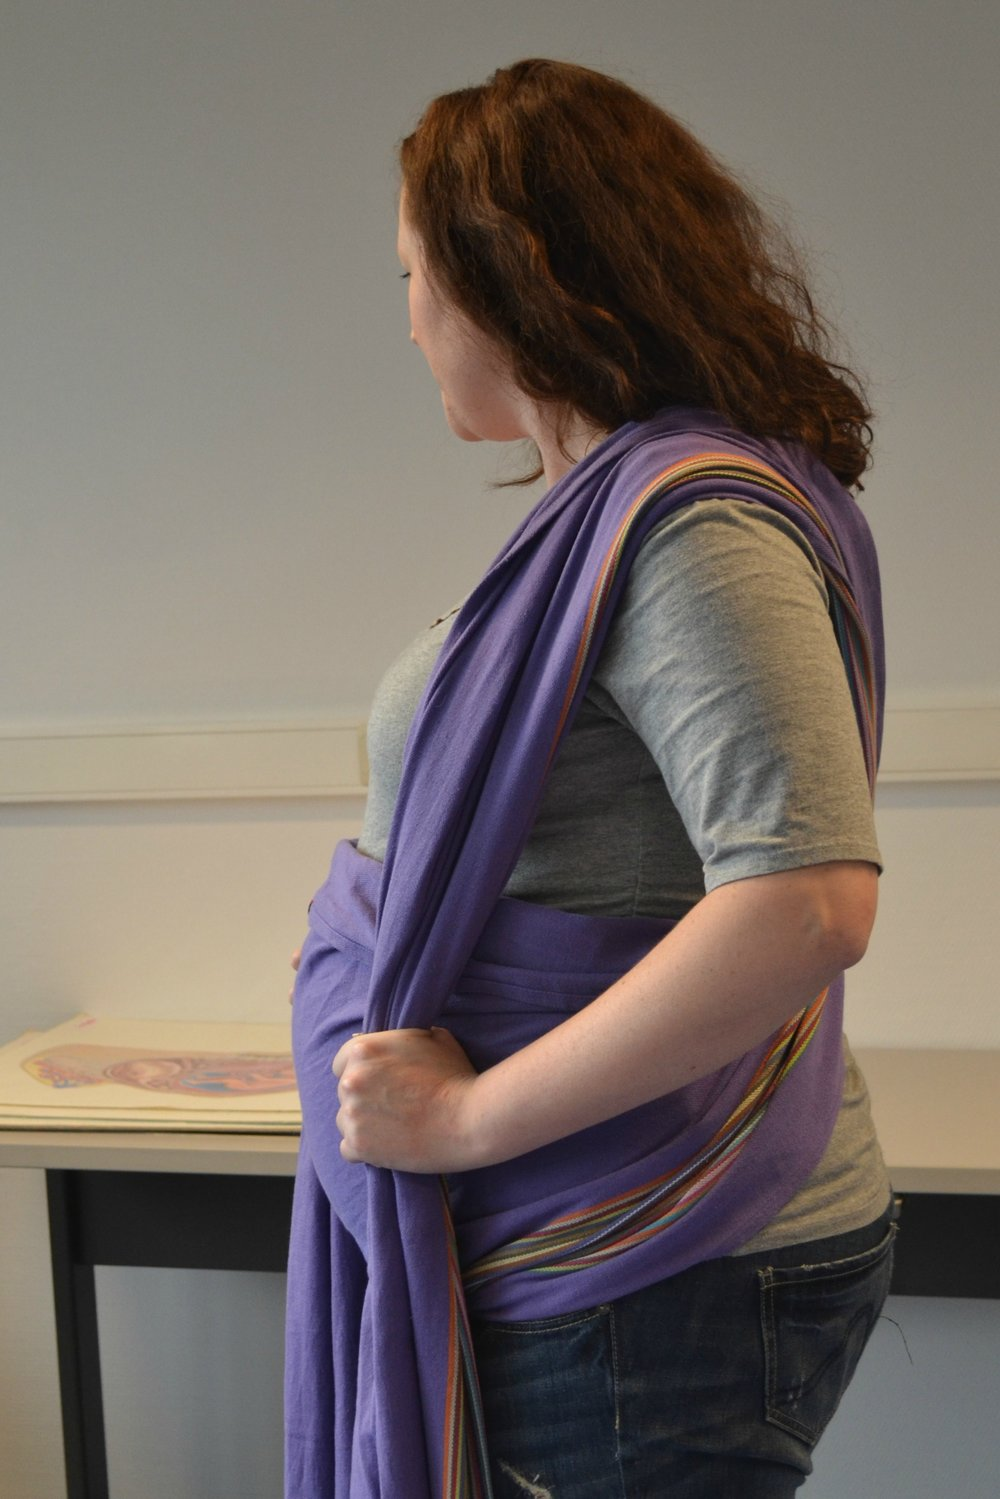 The rebozo wraps around the belly, crosses in the back and over the shoulders. Then, the mom can pull on the ends to help lift the belly, relieving some of the pressure on her growing belly.